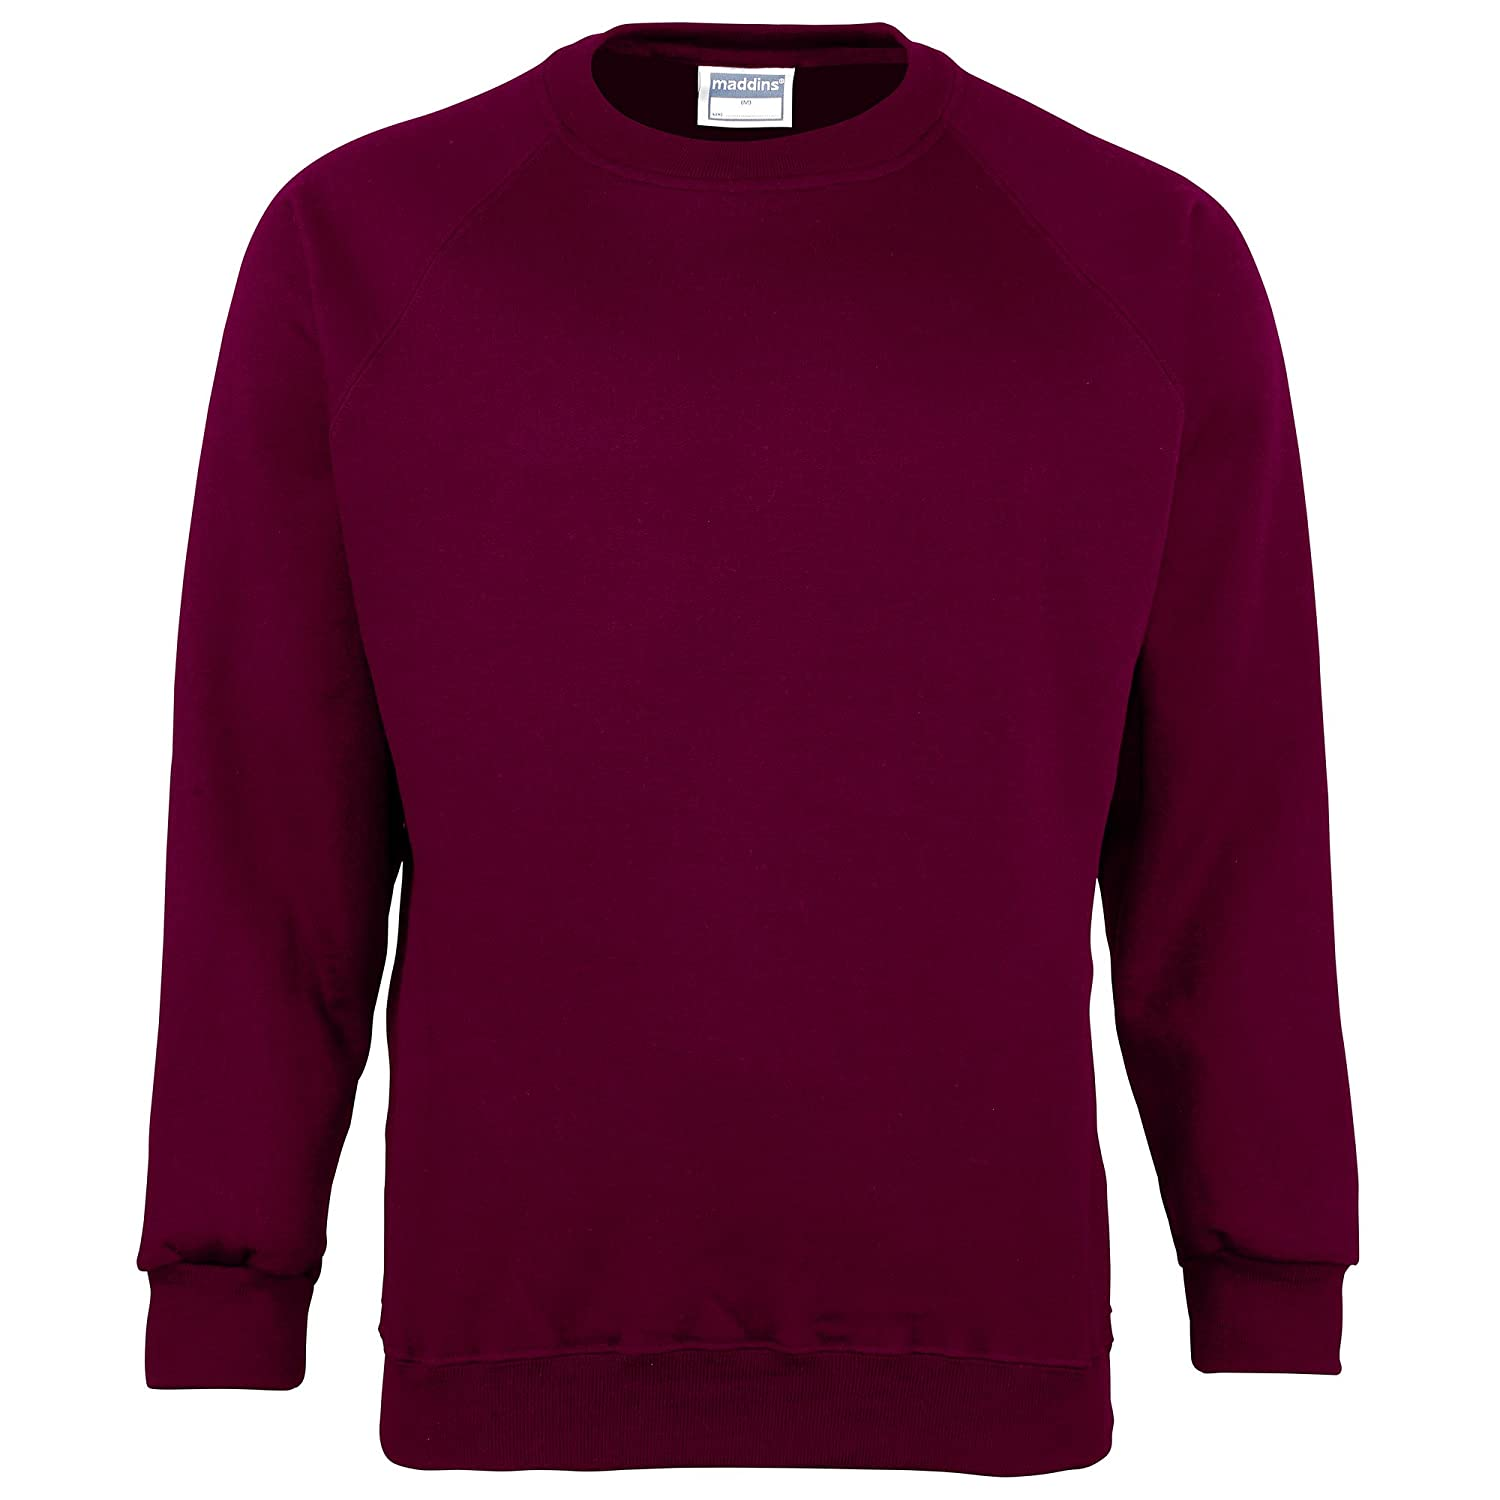 Amazon.com  Maddins Men s Plain Crew Neck Sweatshirt  Clothing 0bee74fc3be1